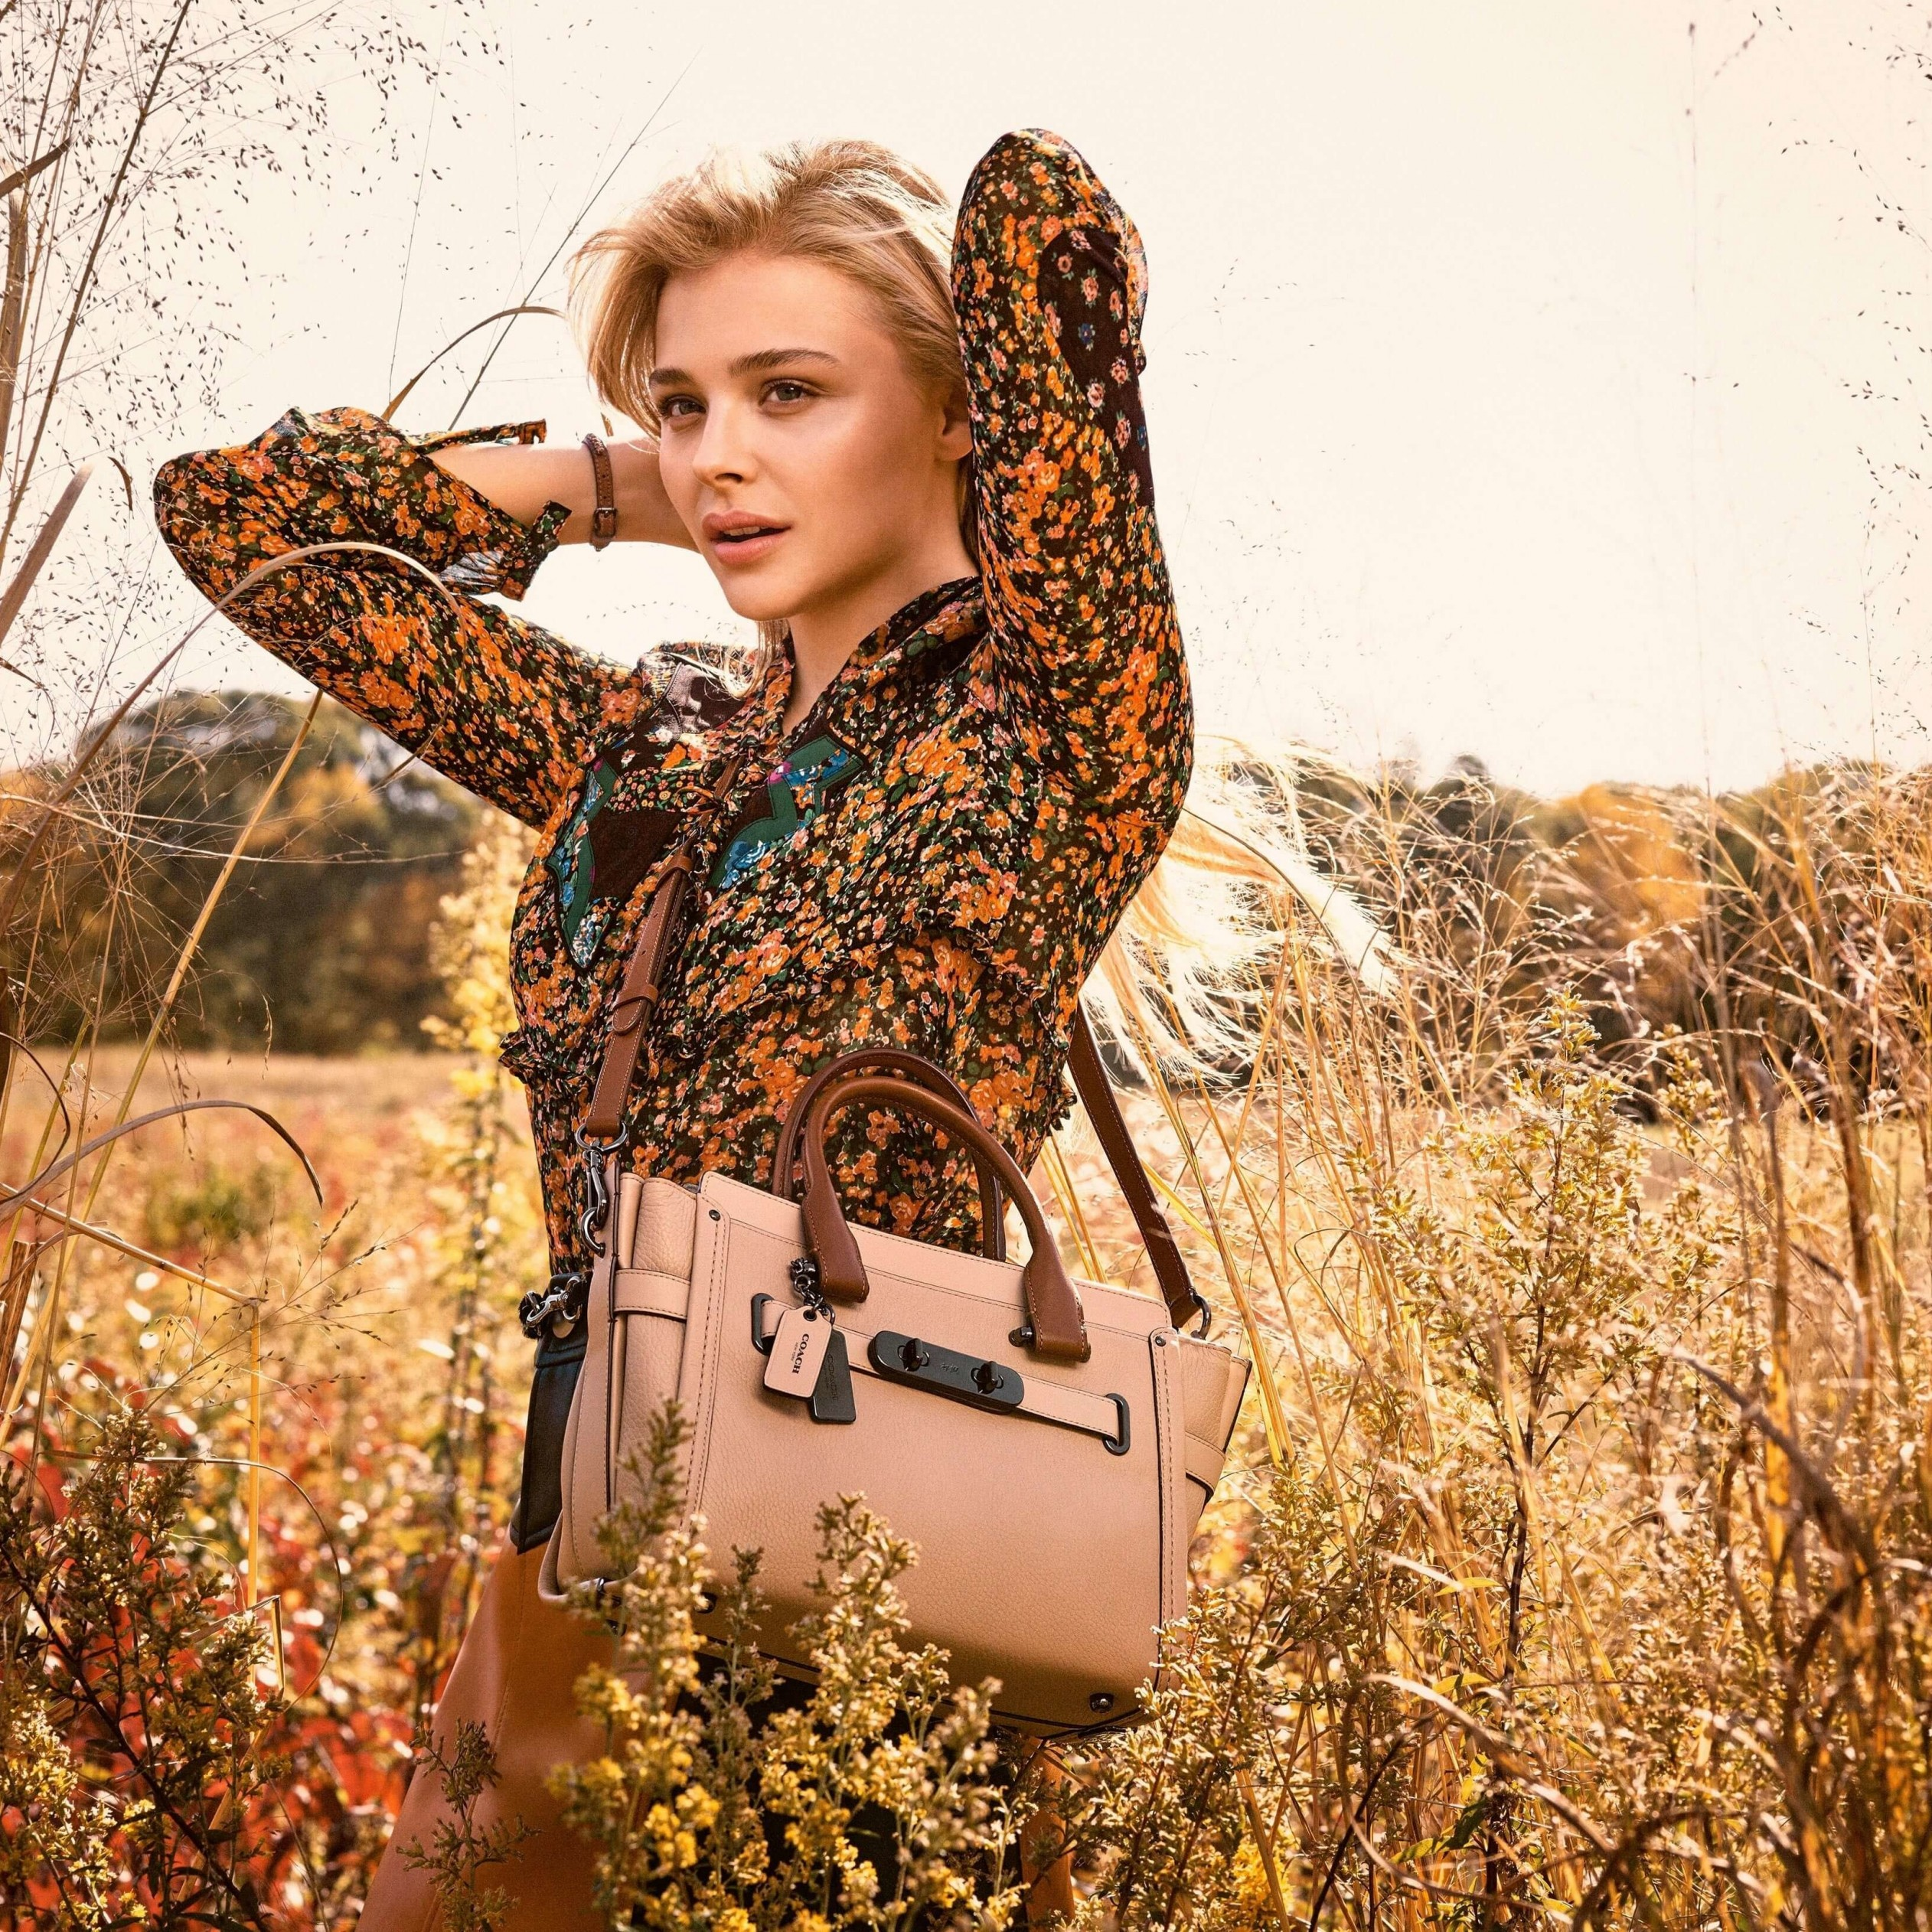 Chloe Moretz Coach Spring 2016 Campaign Wallpaper for Apple iPad 4